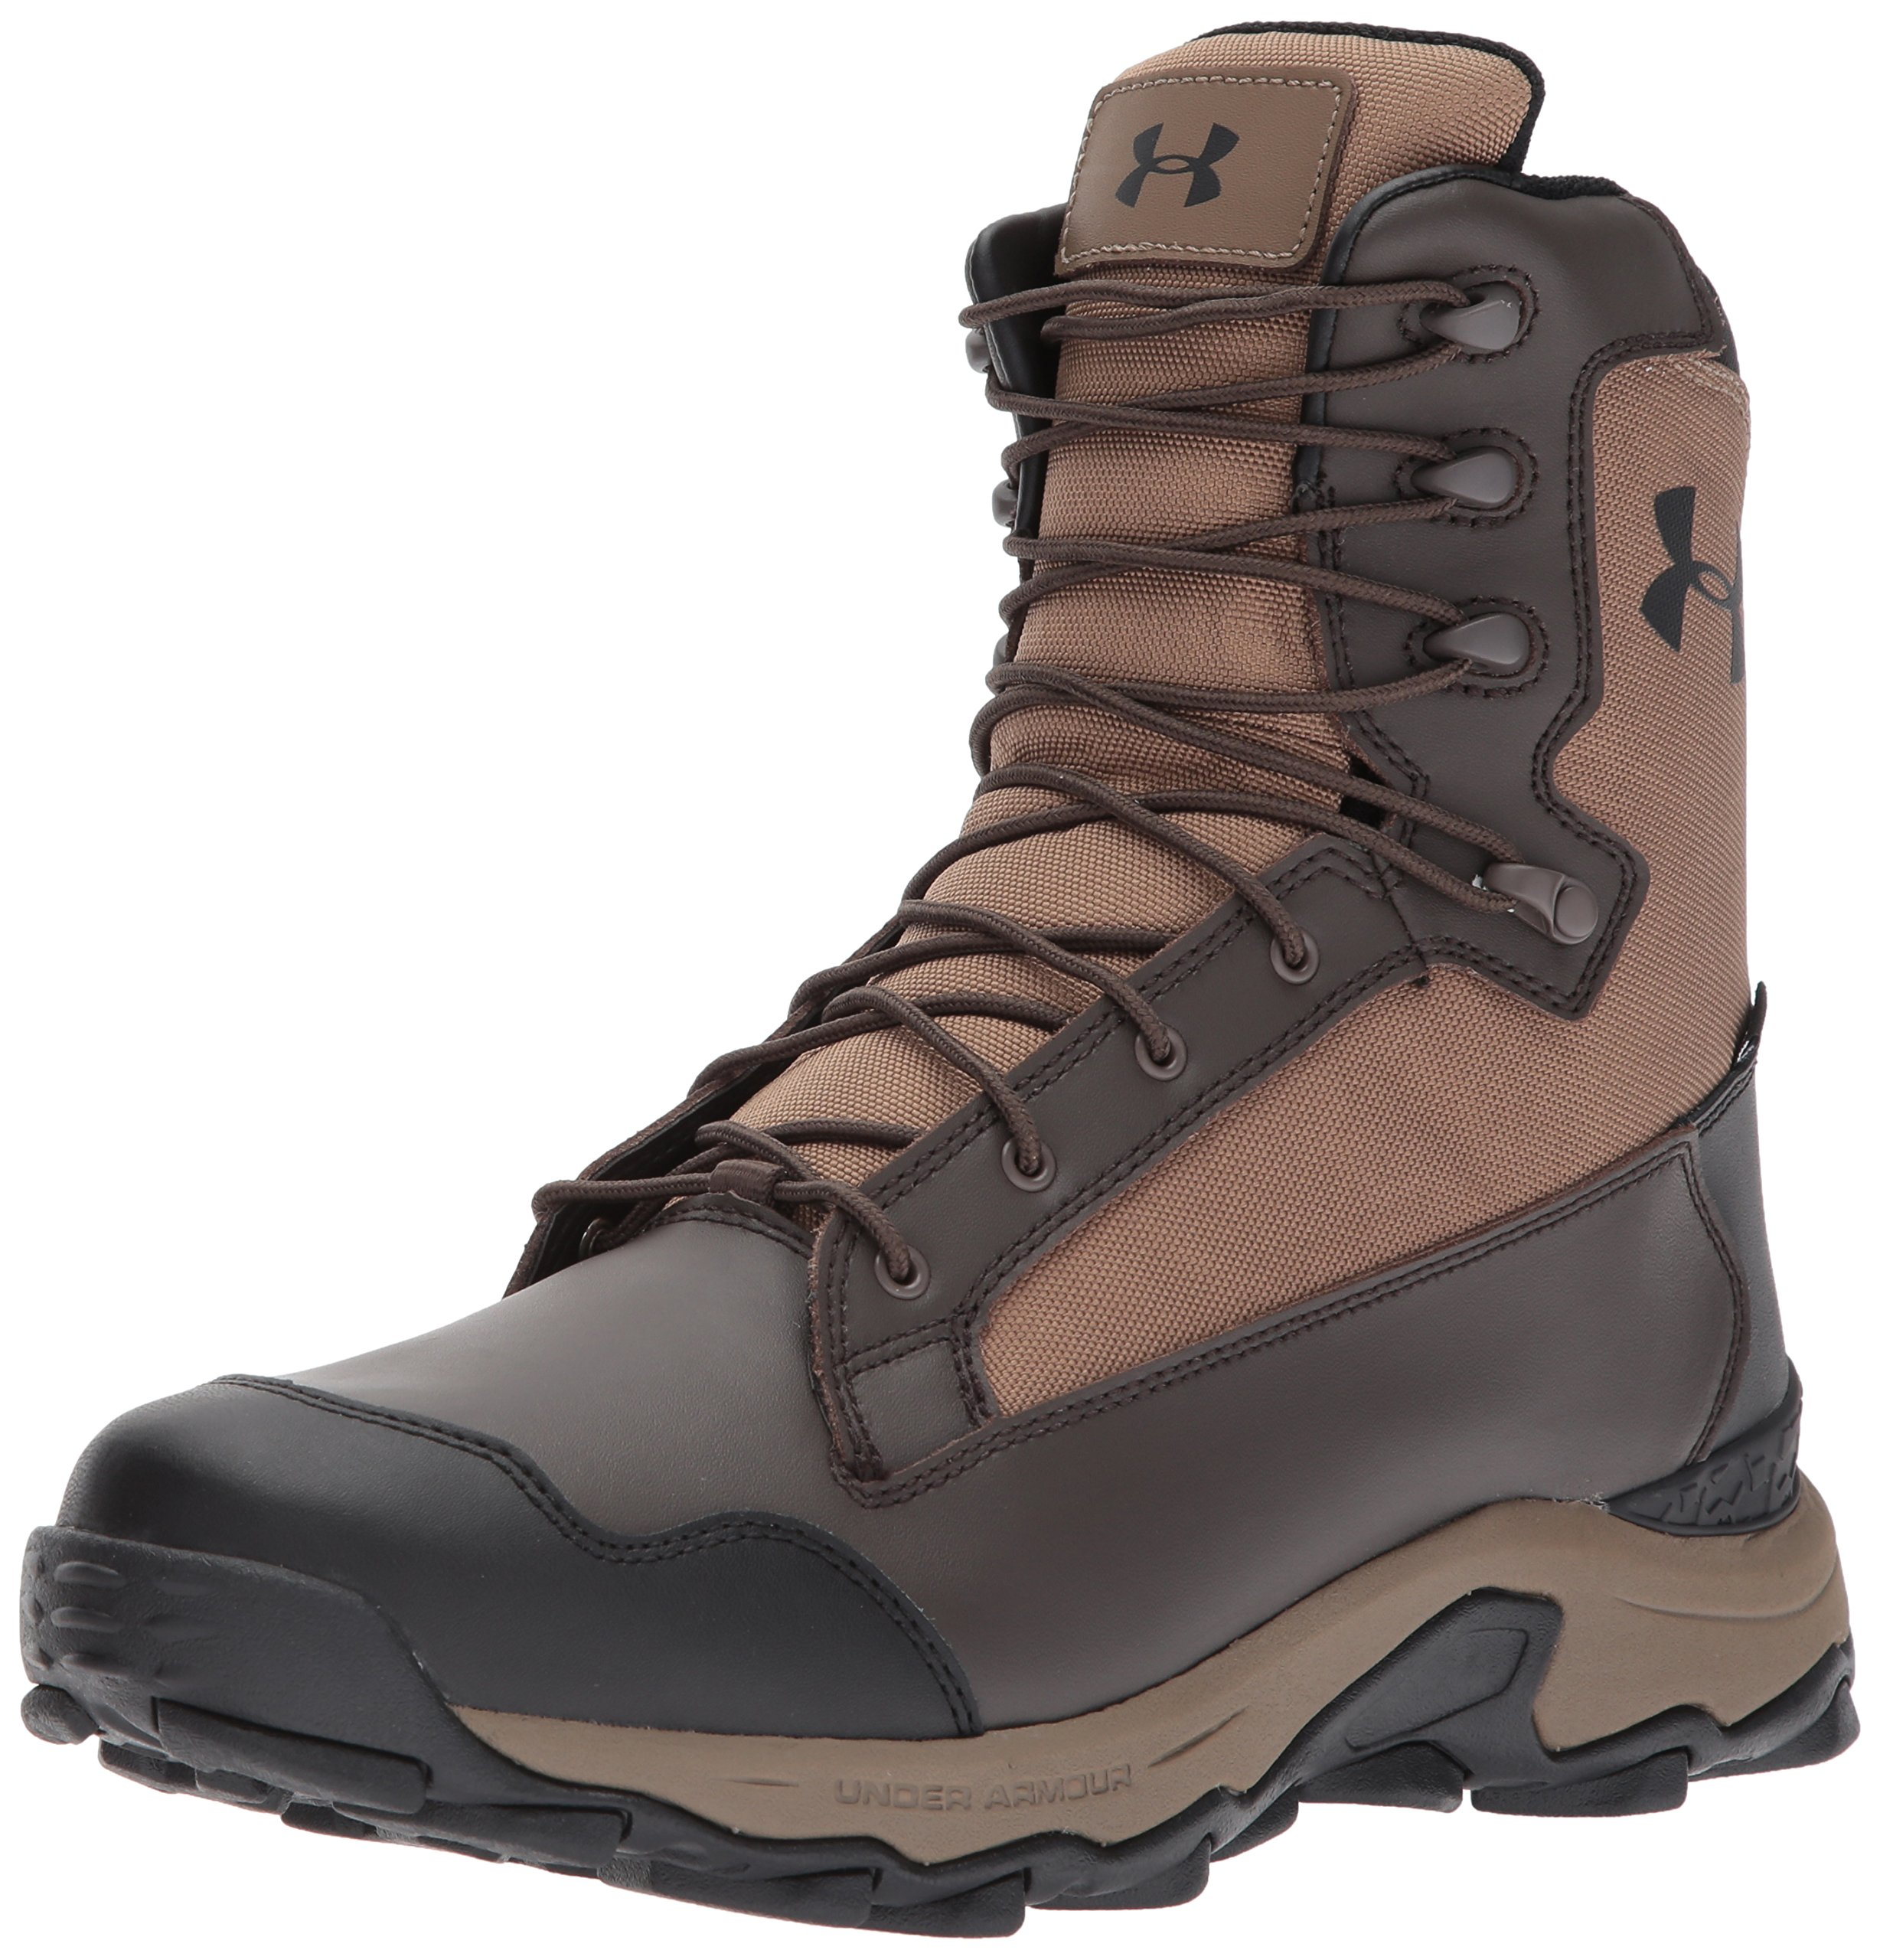 Under Armour Men's Tanger Waterproof-400G Ankle Boot, Uniform (225)/Maverick Brown, 10